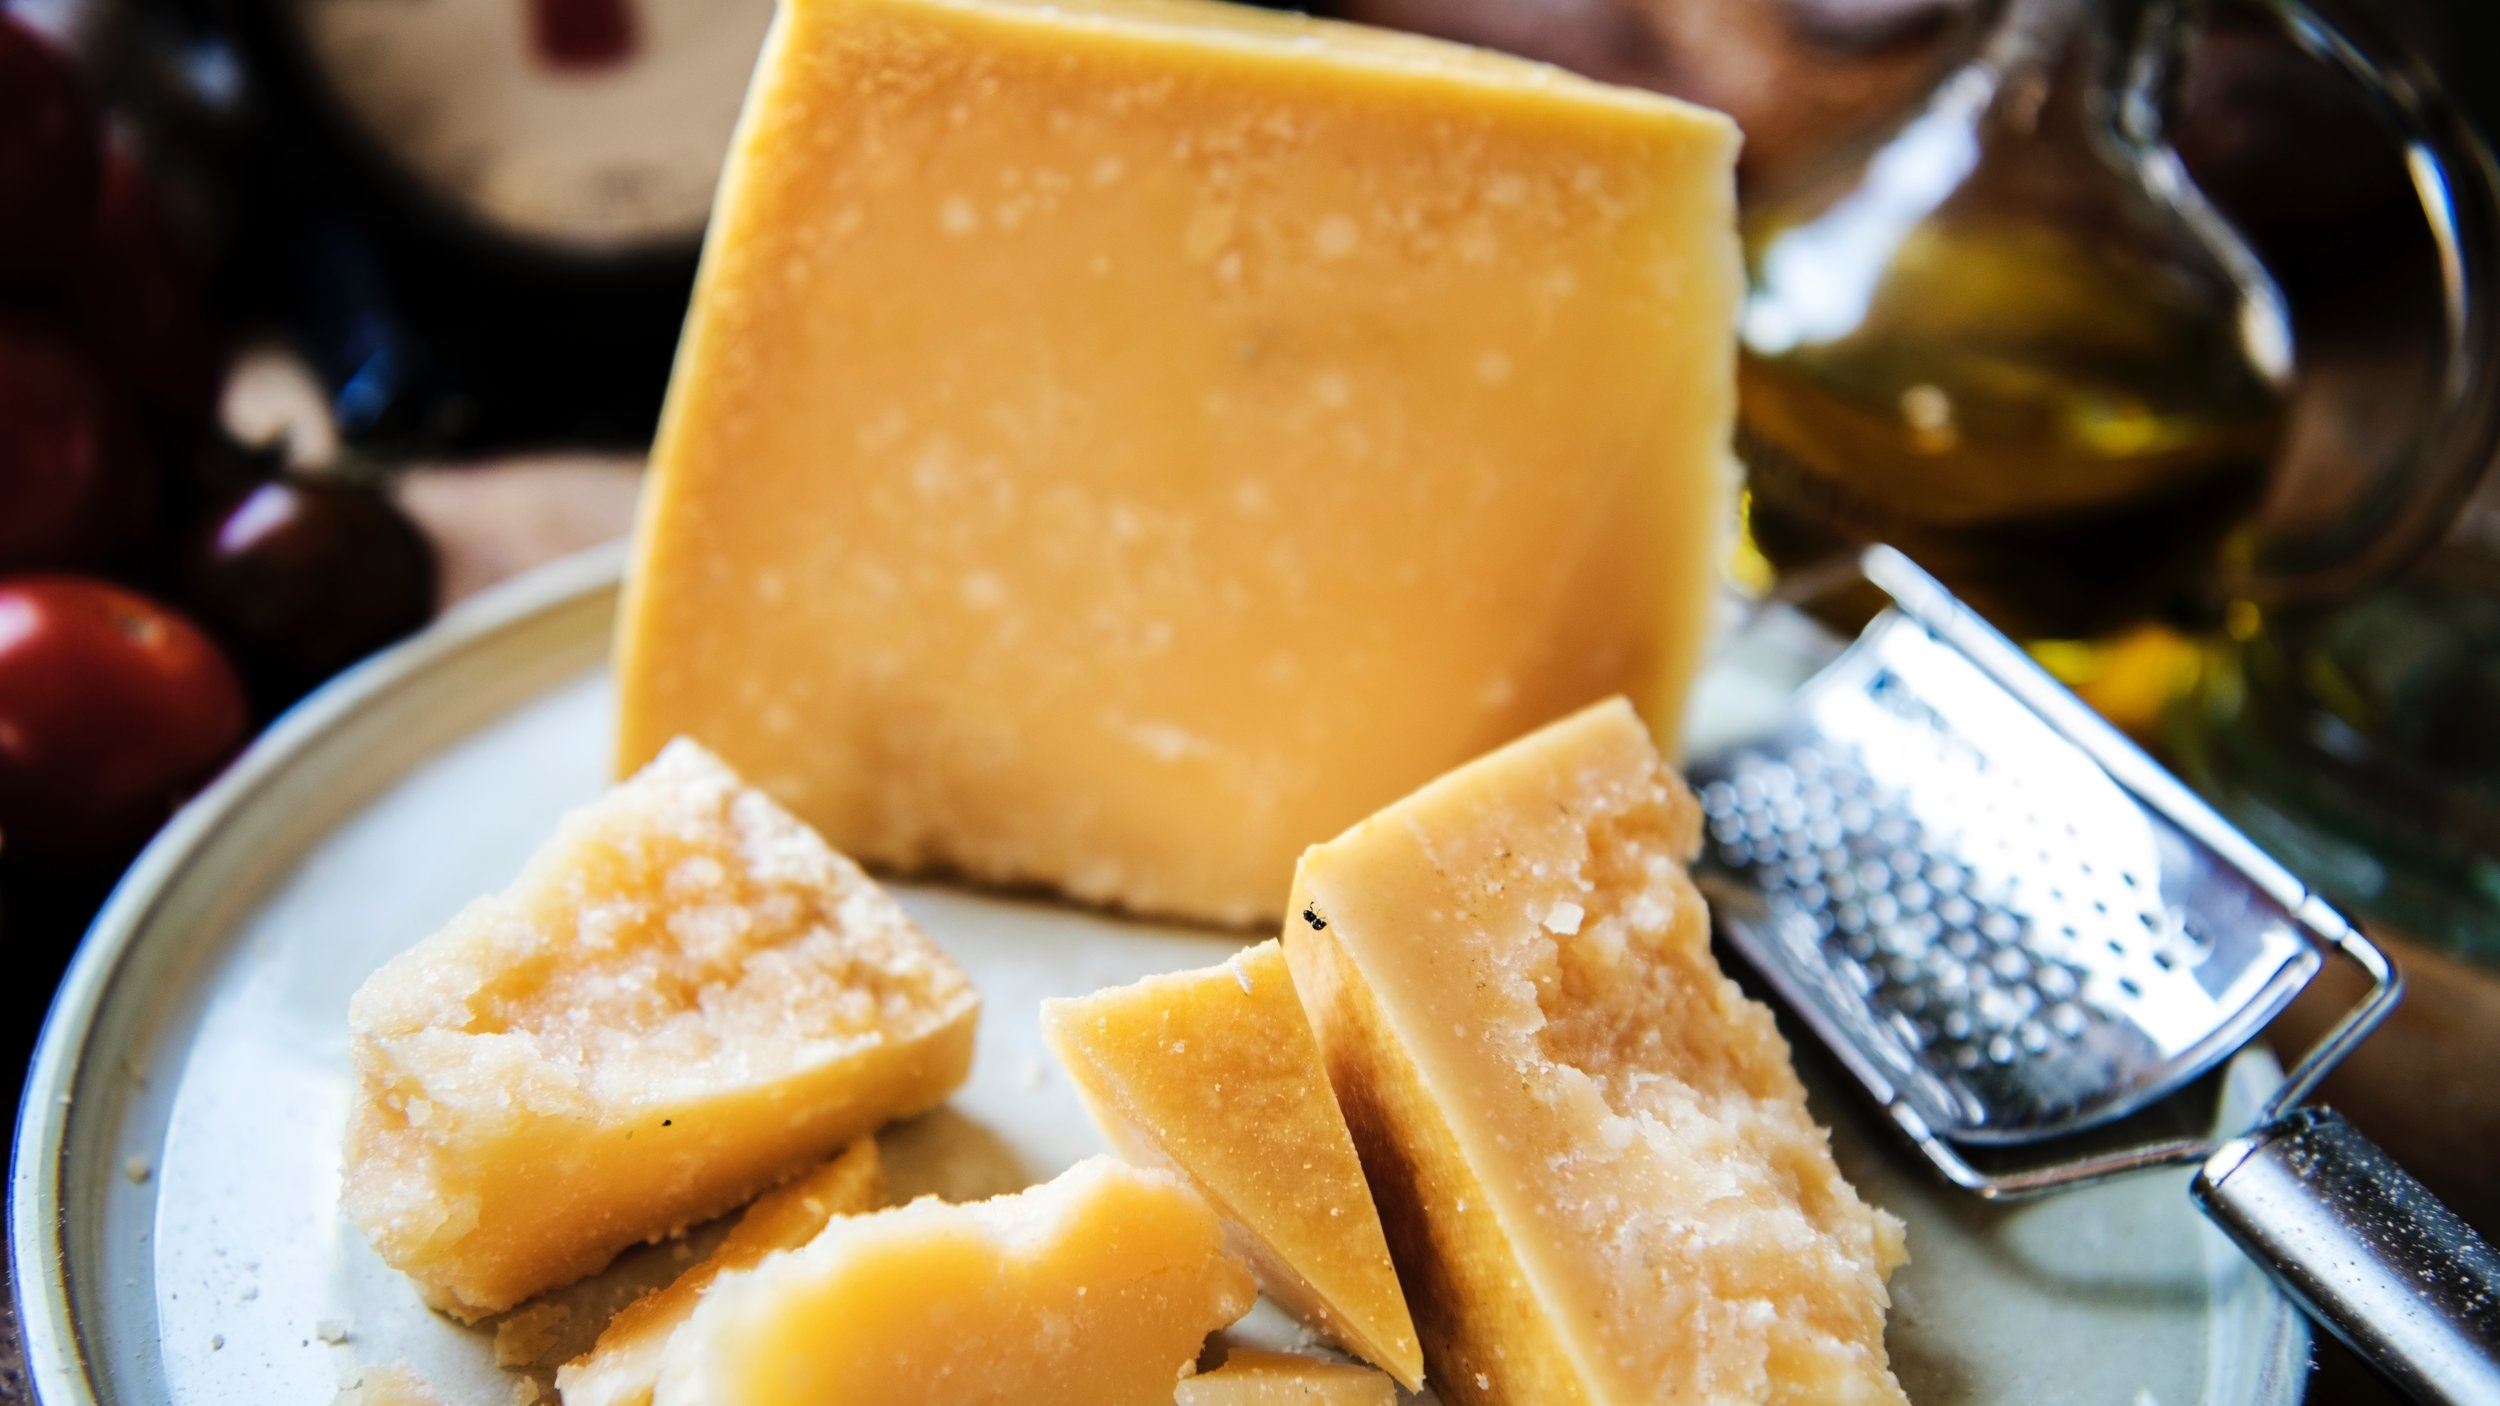 cheese-close-up-dairy-product-1435184.jpg